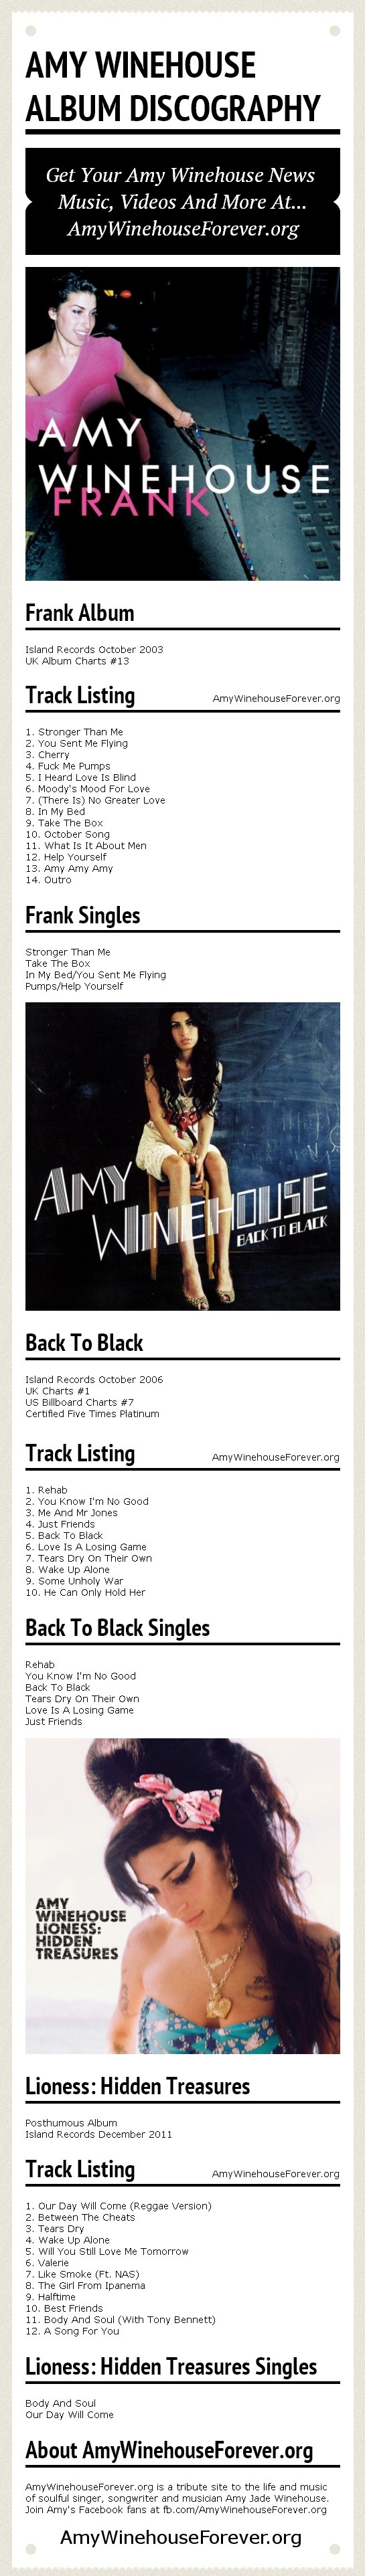 Amy Winehouse Album Discography